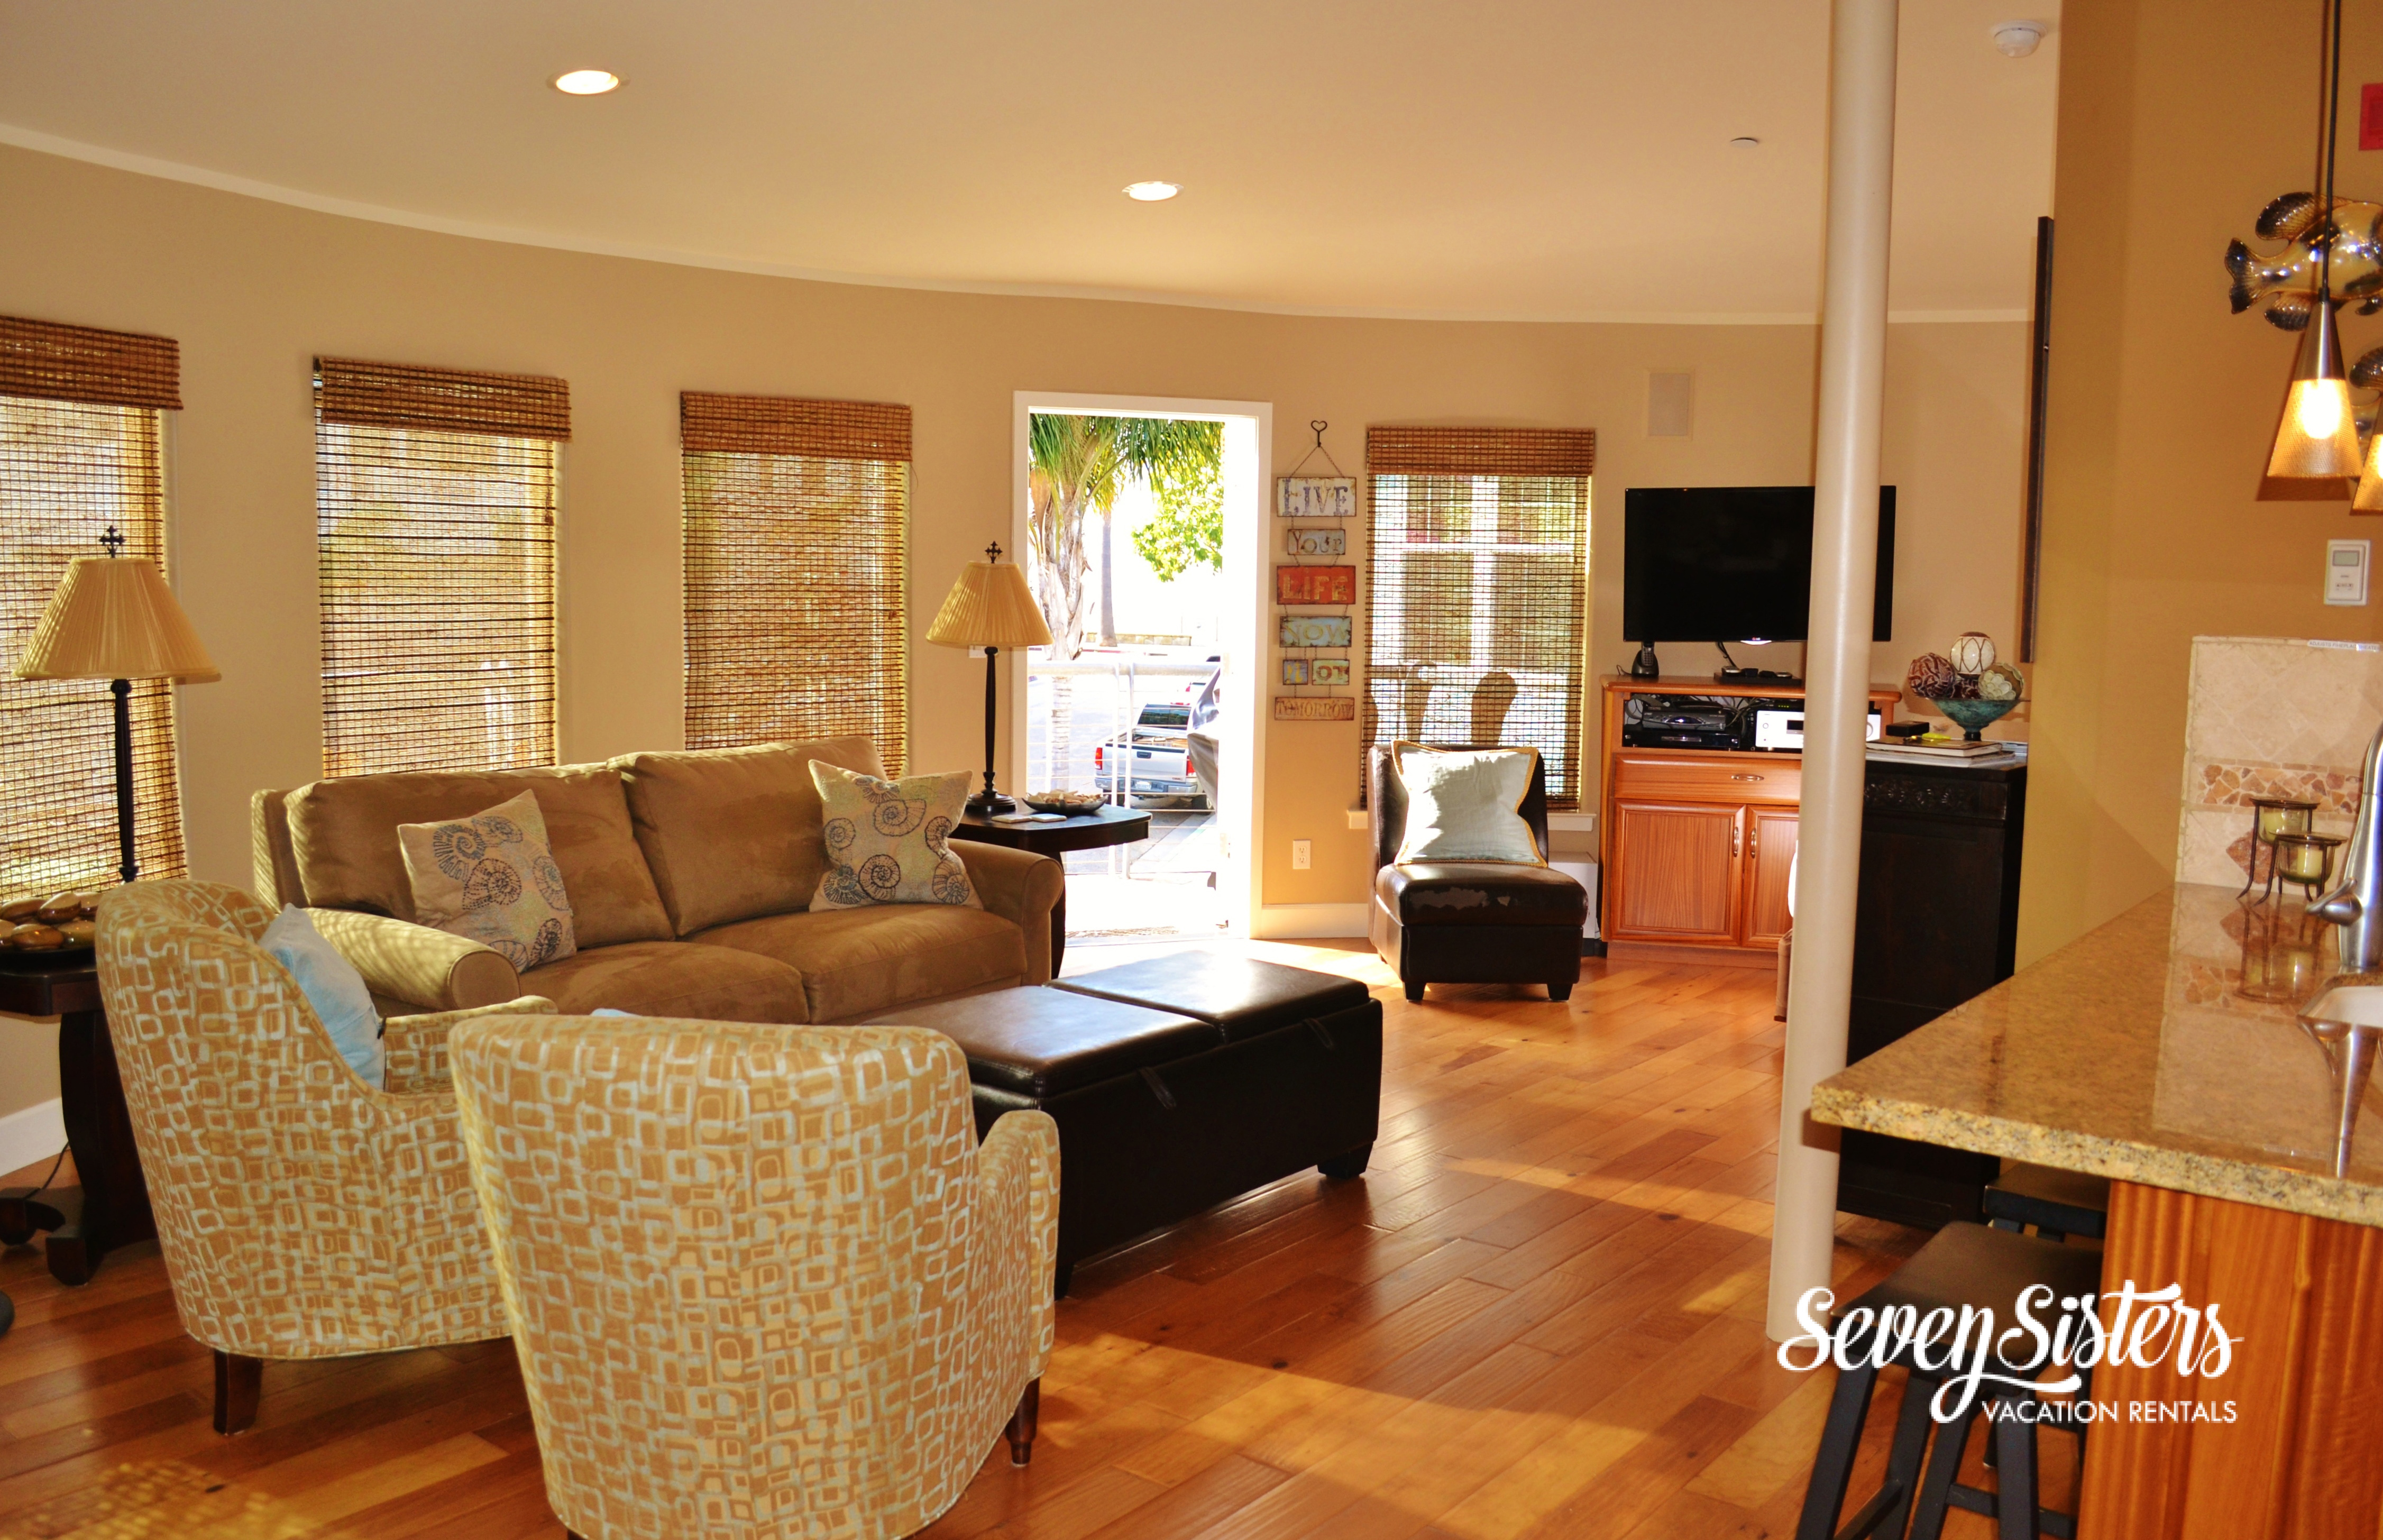 Seven Sisters Vacation Rentals image 7